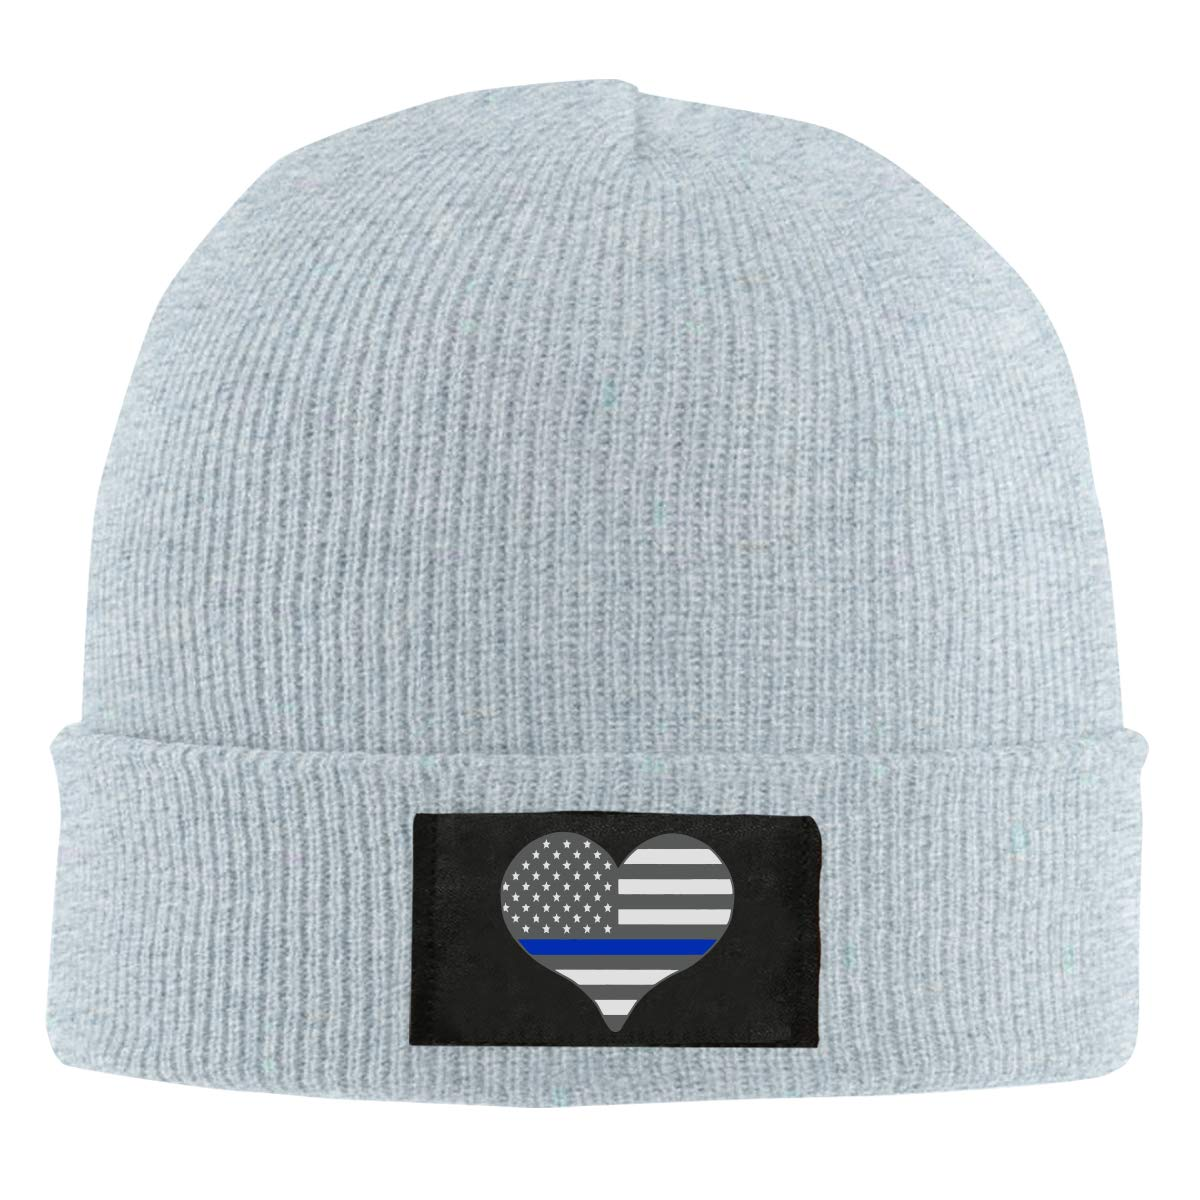 100/% Acrylic Thick Beanies Cap Mens and Womens I Love Police Thin Blue Line Knit Cap